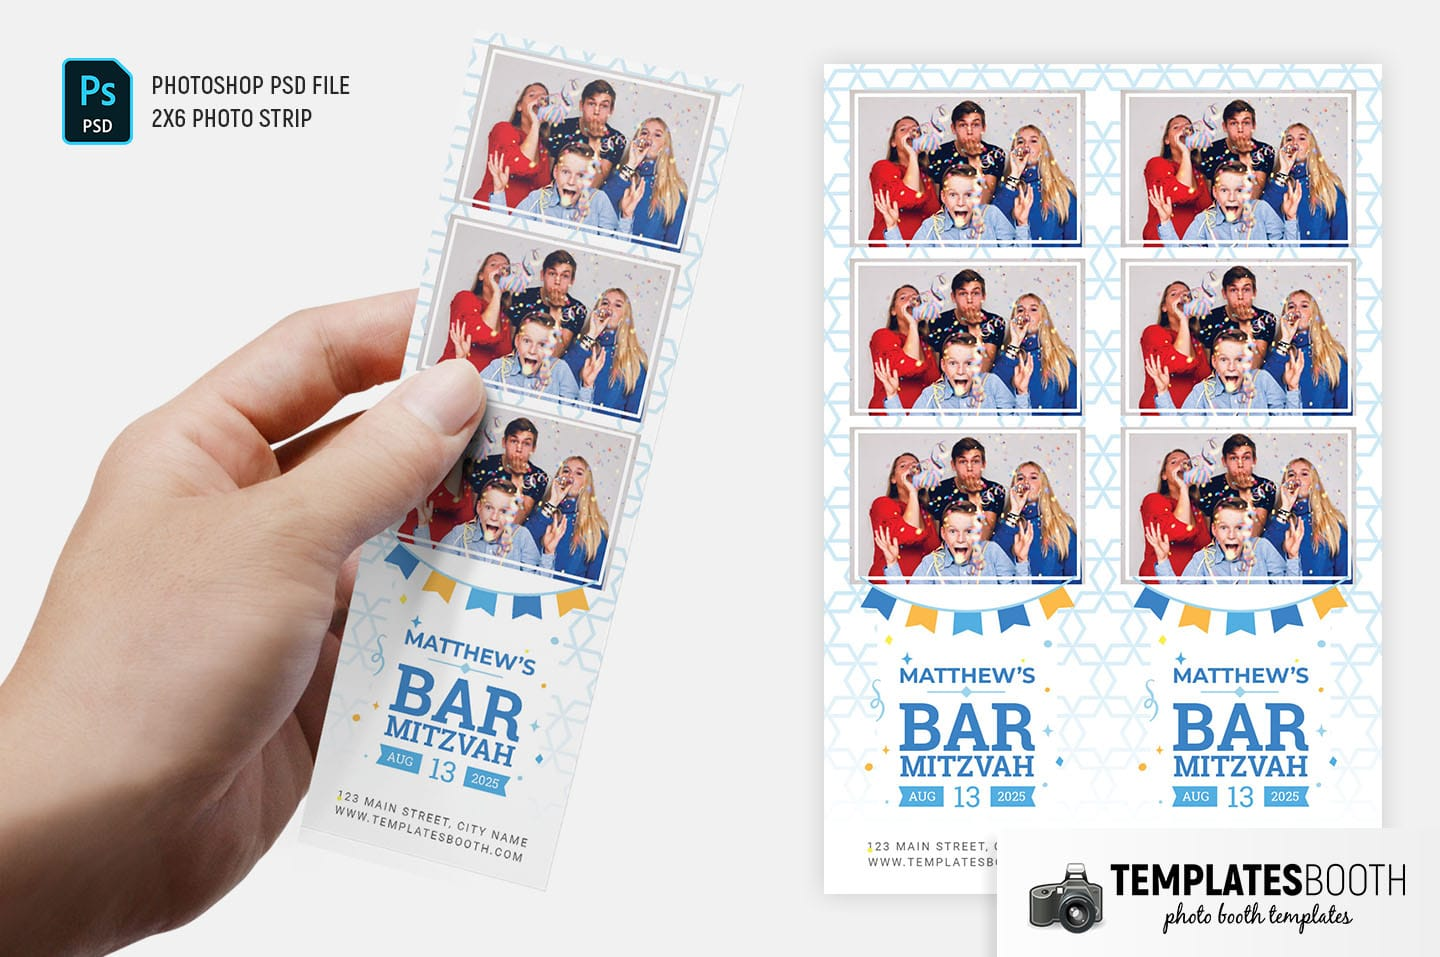 Bar Mitzvah Photo Booth Template (2x6 photo strip)